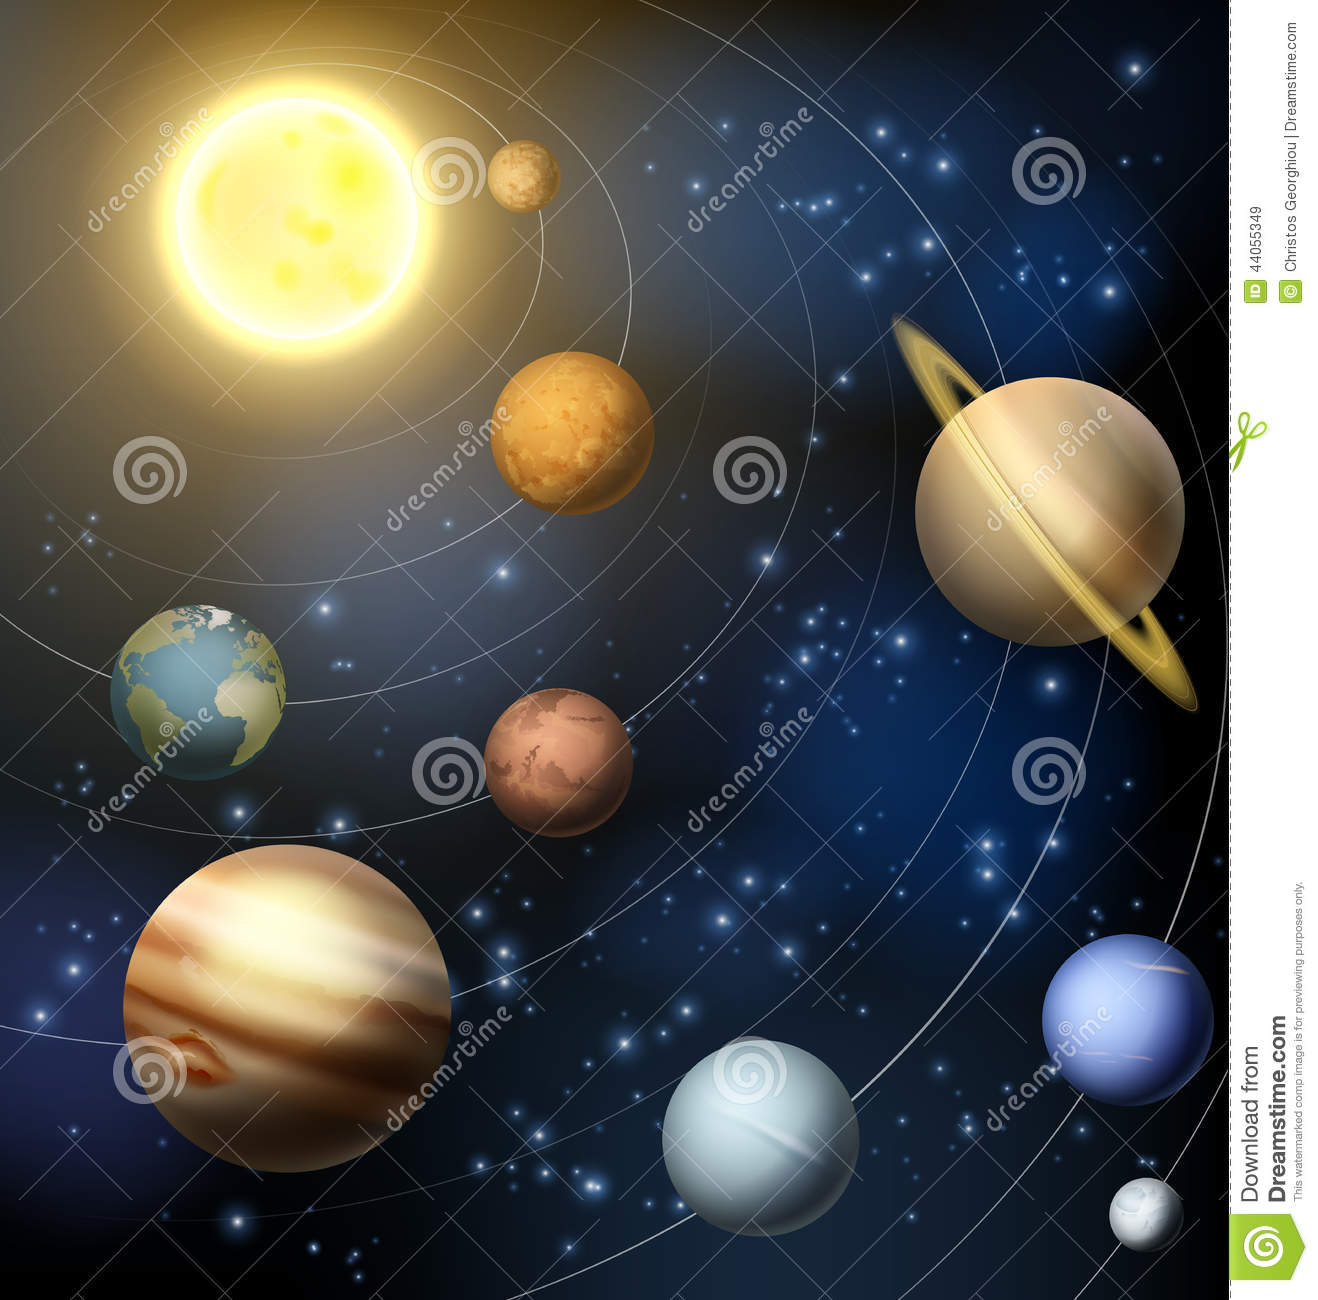 Solar System Planets Illustration Stock Vector - Image ...